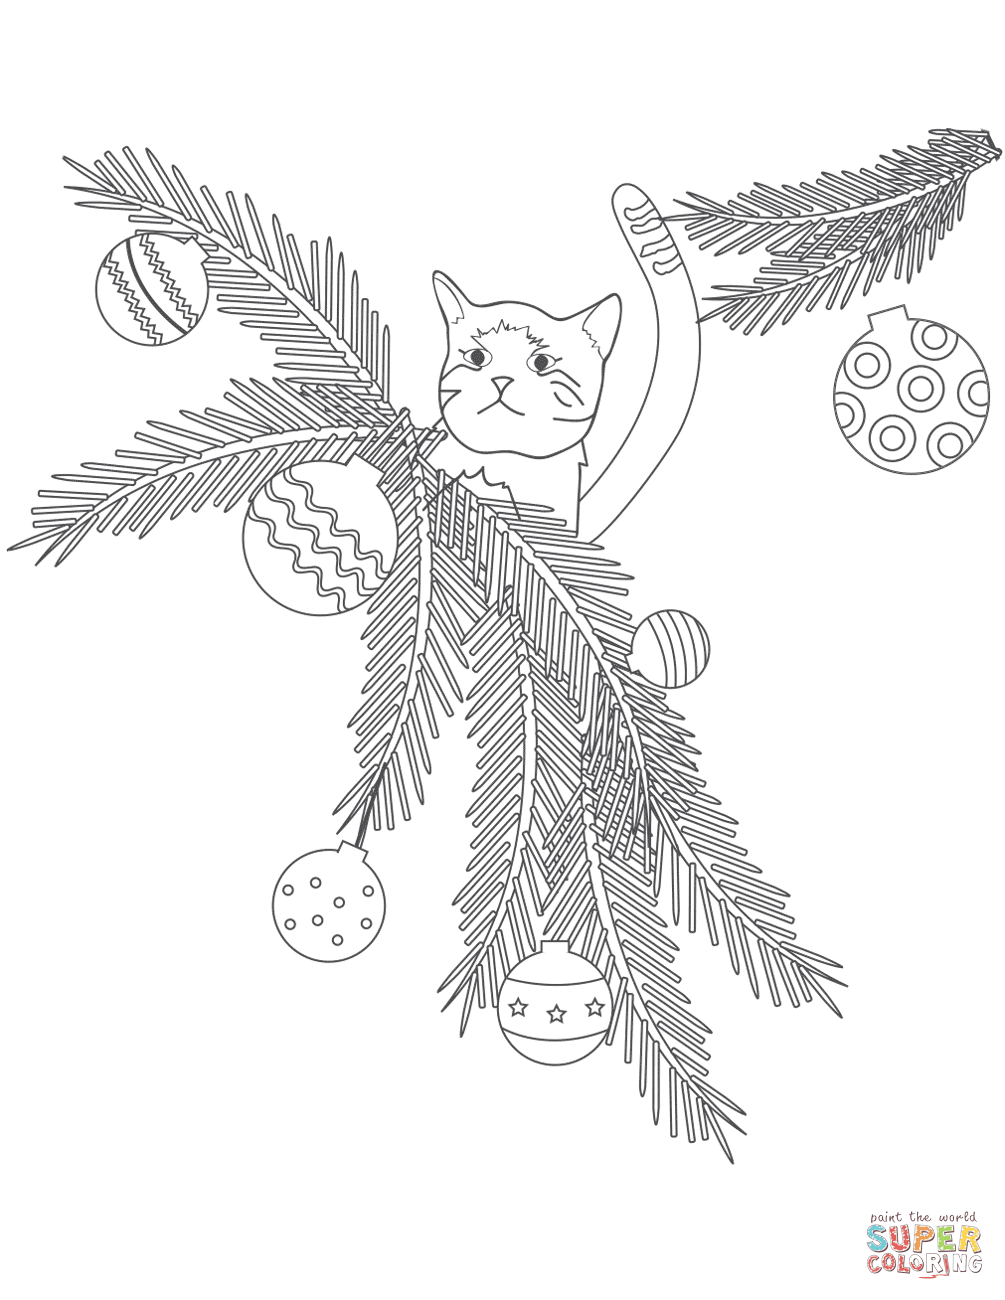 Coloring Sheets Of American Government Branches Coloring Pages